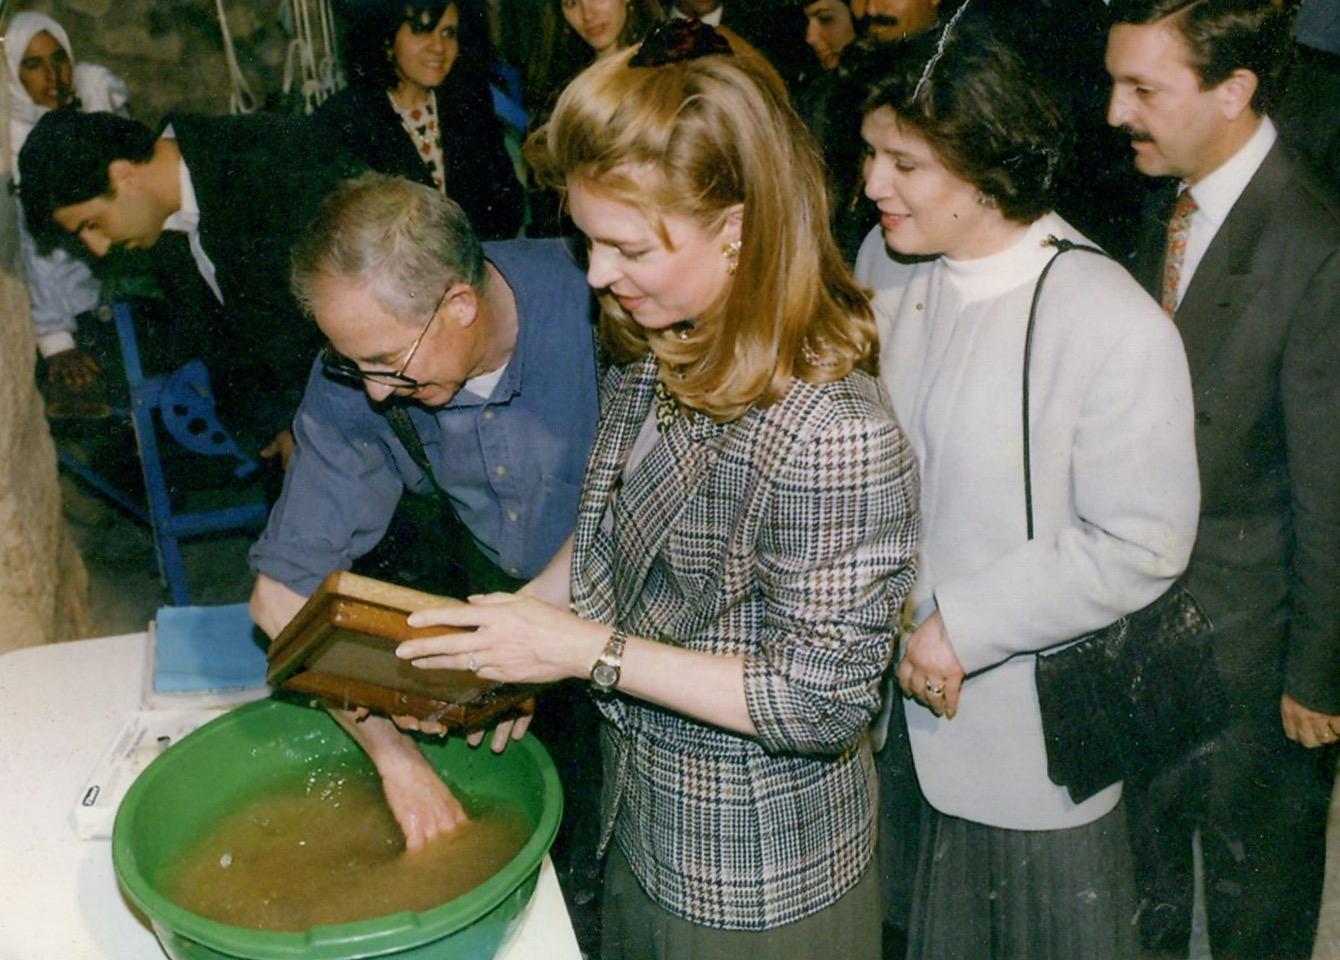 Usama al-Khalidi demonstrating to Queen Noor Al-Hussein how to make a sheet of handmade paper